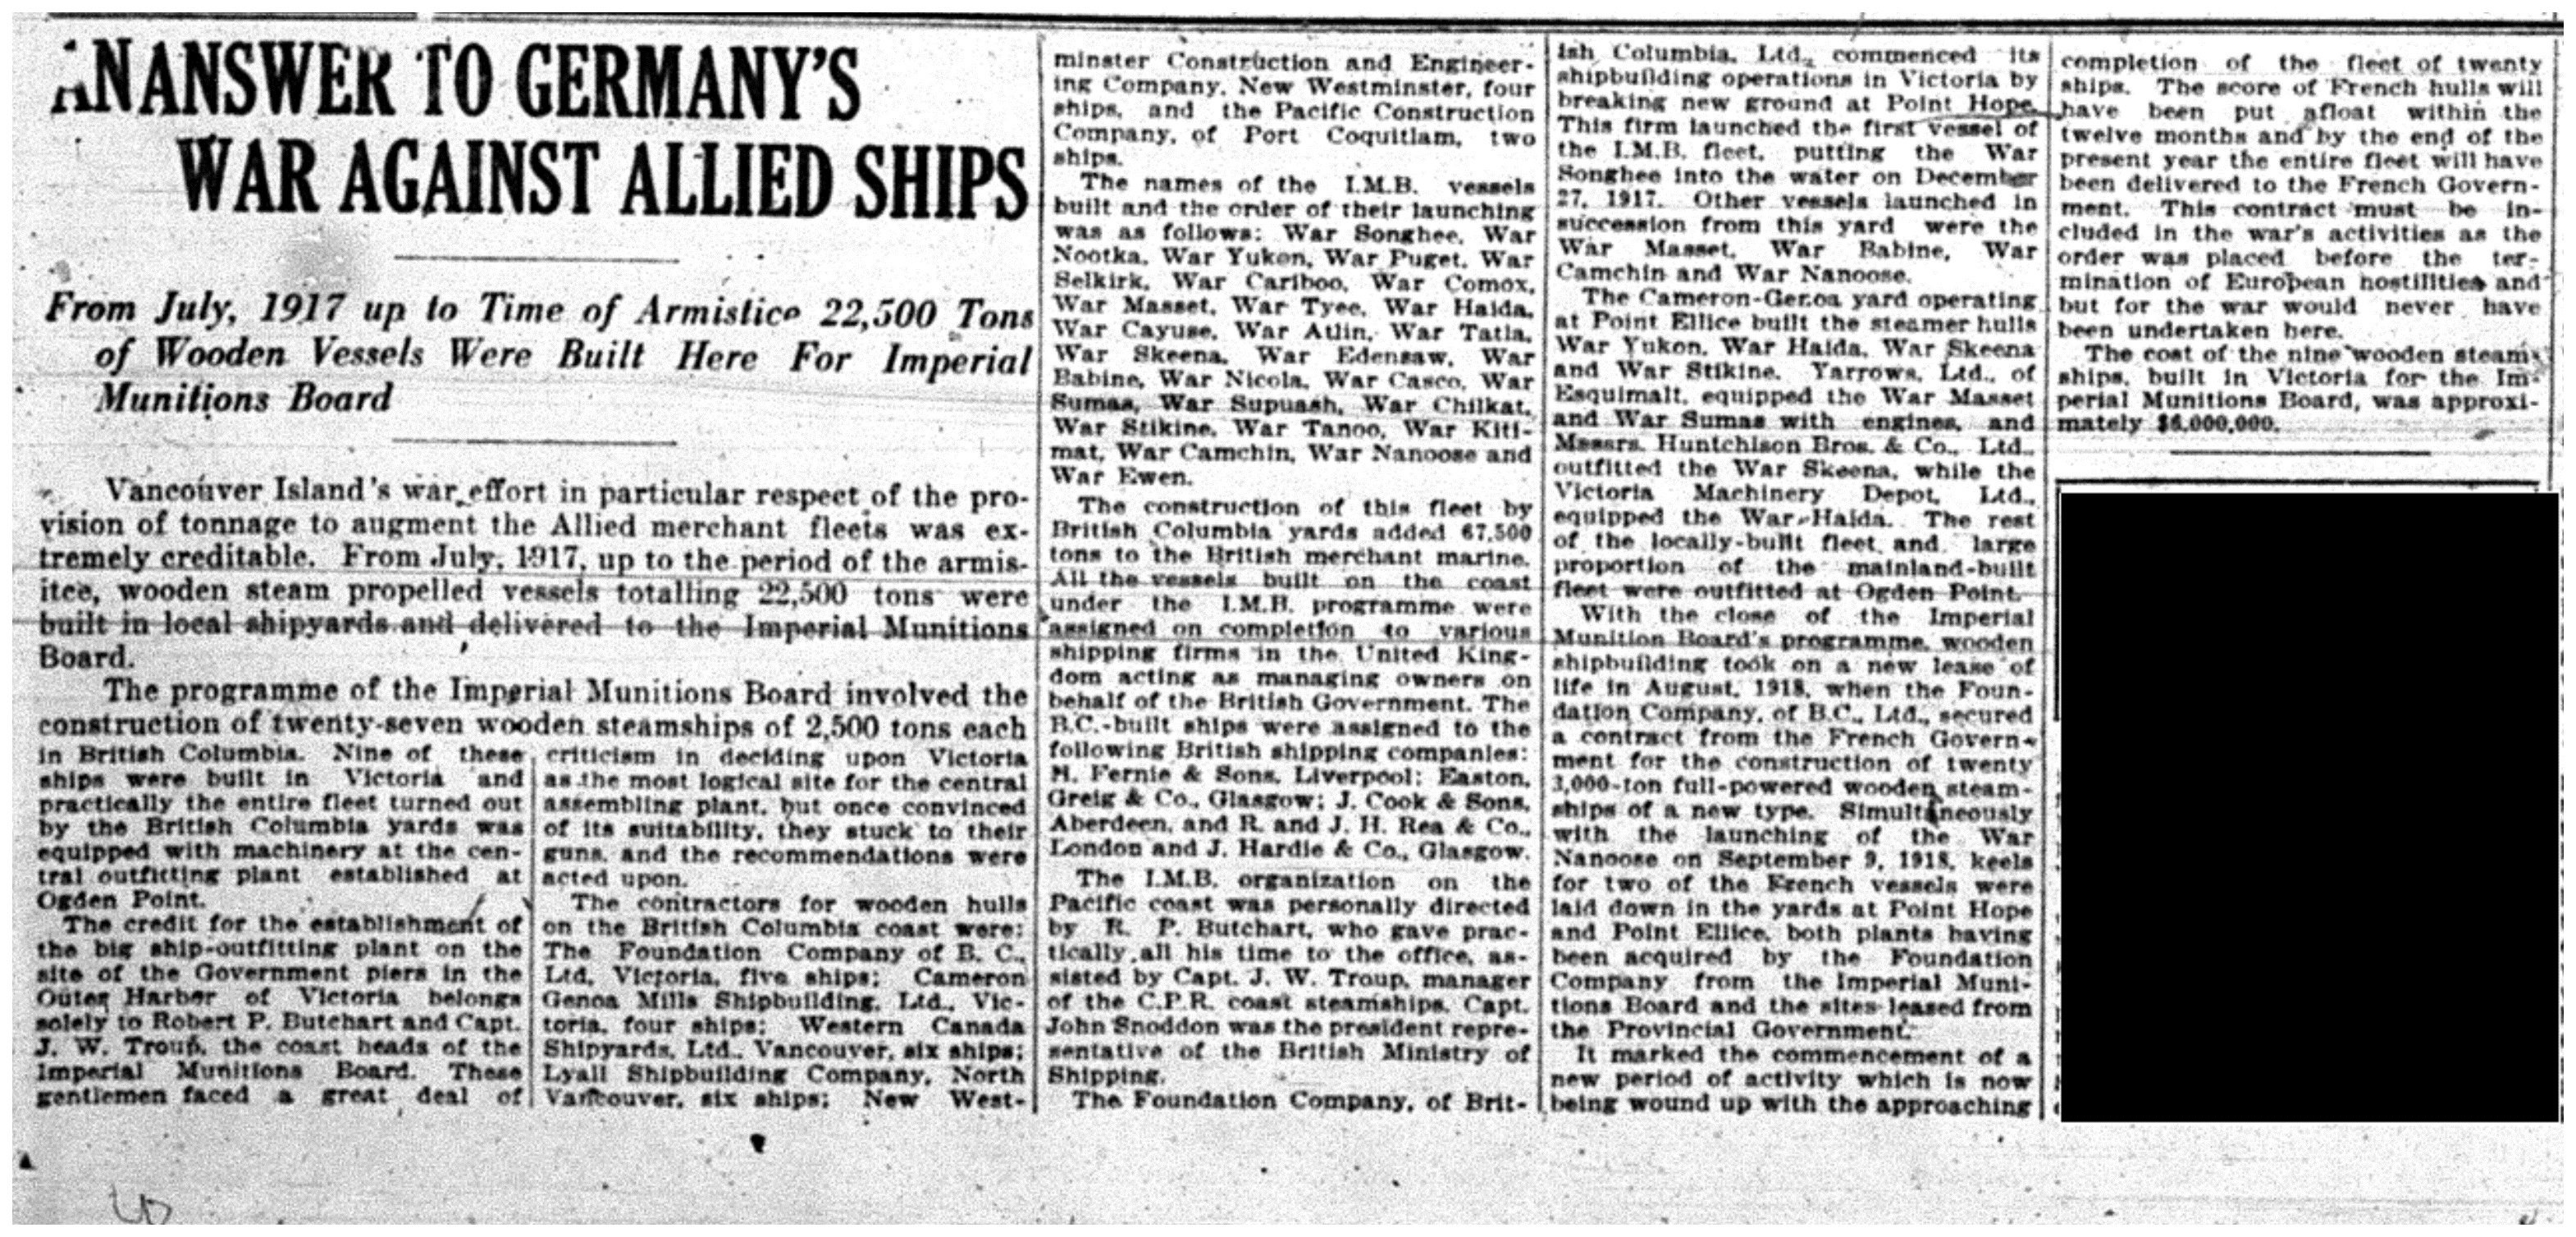 """An Answer To Germany's War Against Allied Ships"""